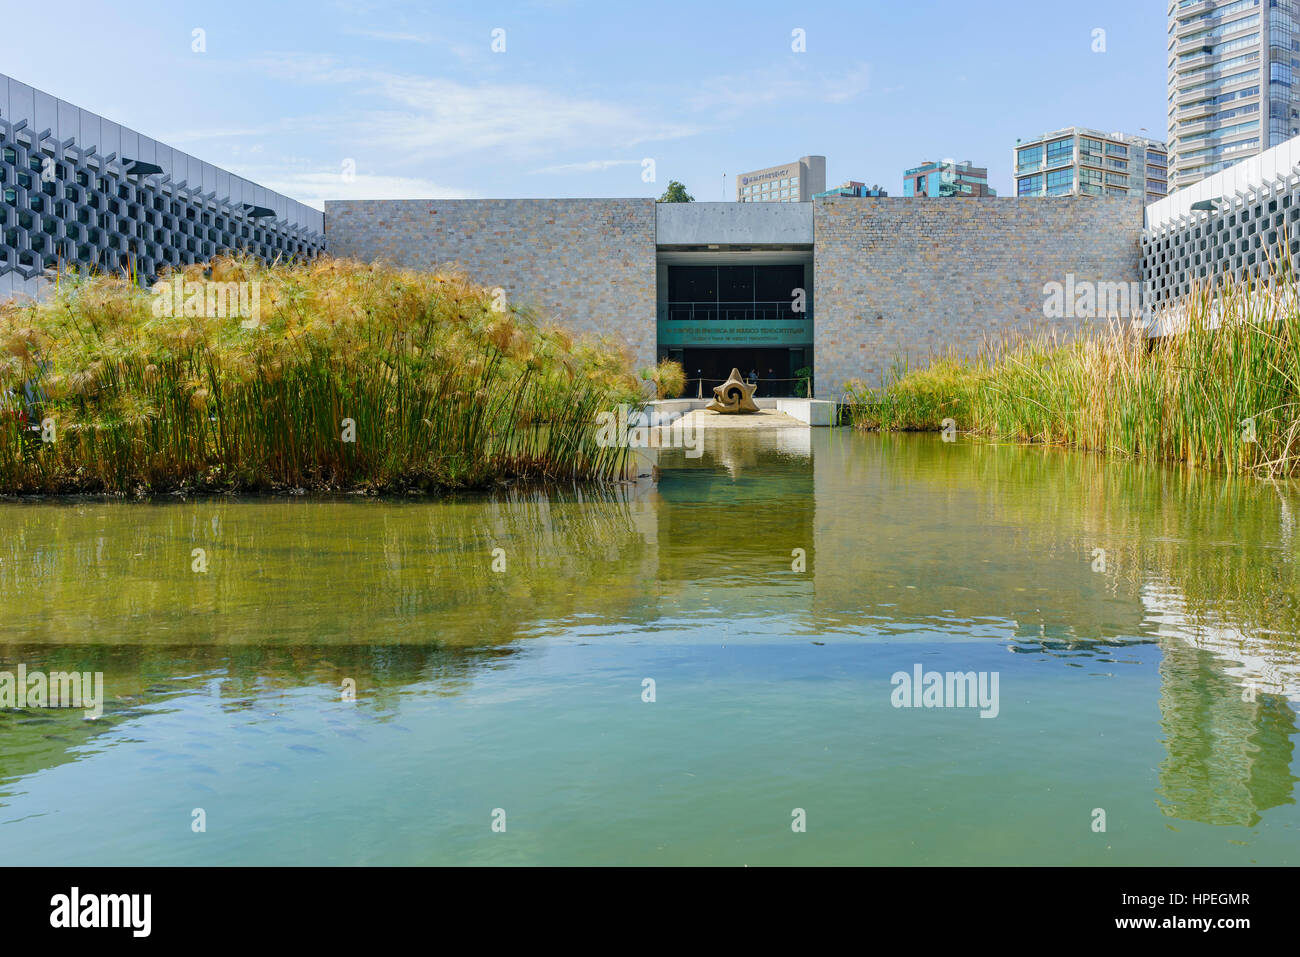 Mexico City, FEB 16: Pond in the National Museum of Anthropology (Museo Nacional de Antropologia, MNA) on FEB 16, - Stock Image